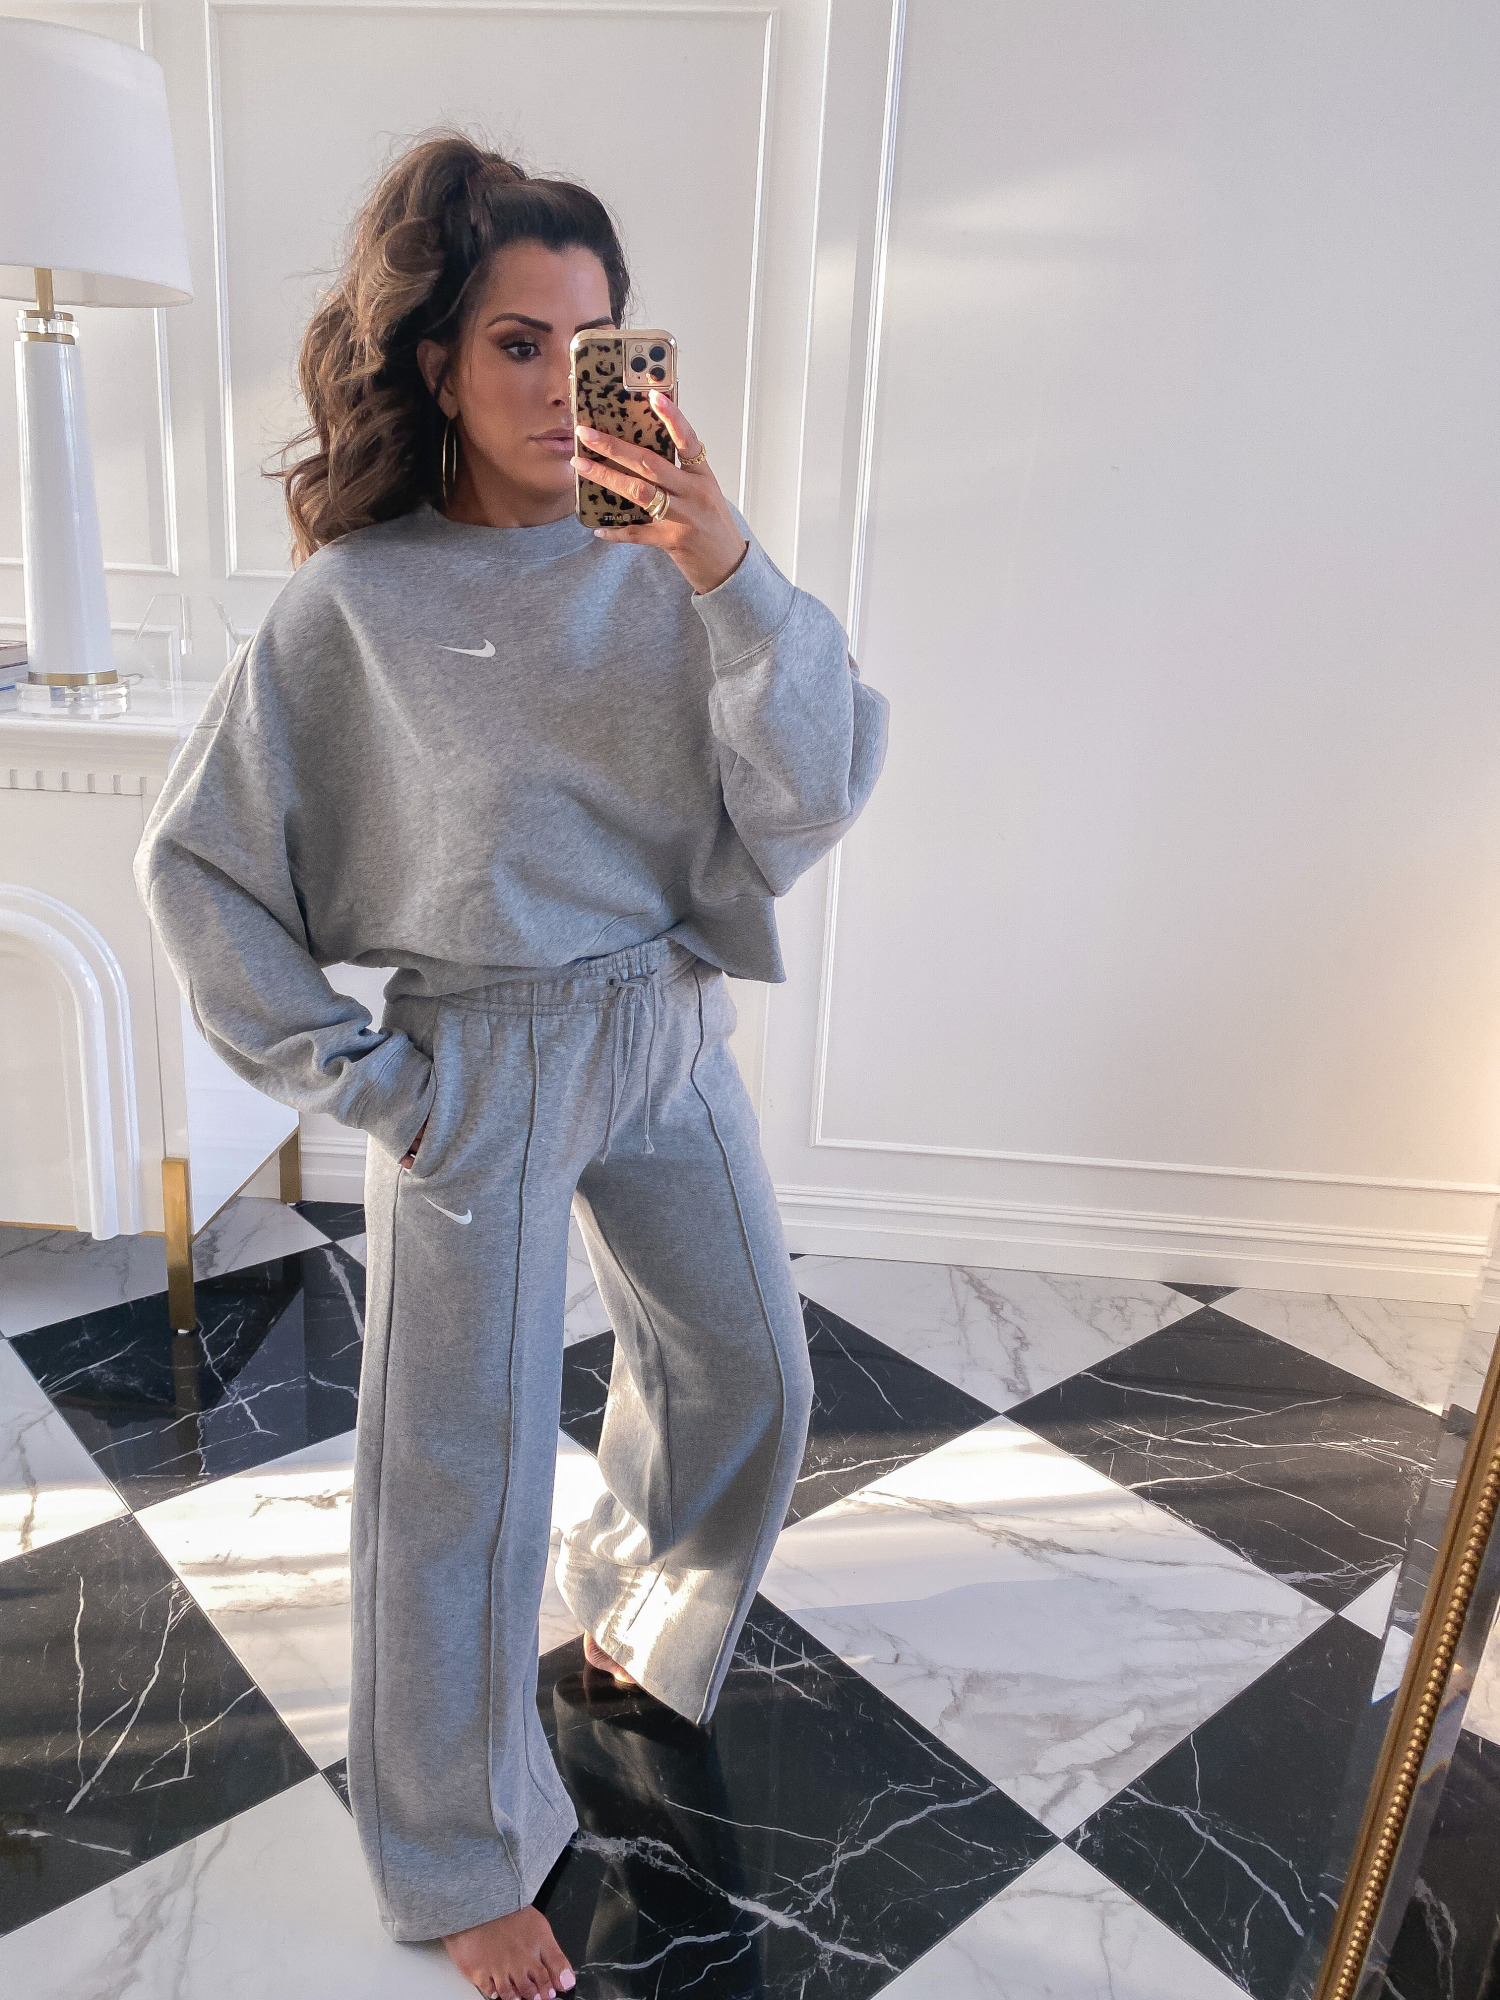 Nordstrom Anniversary Sale 2020 try on guide, NSALE 2020 nike womens, emily gemma | Nordstrom Anniversary Sale by popular US fashion blog, The Sweetest Thing: image of Emily Gemma wearing a NIKE Crewneck Sweatshirt and NIKE Palazzo Pants.